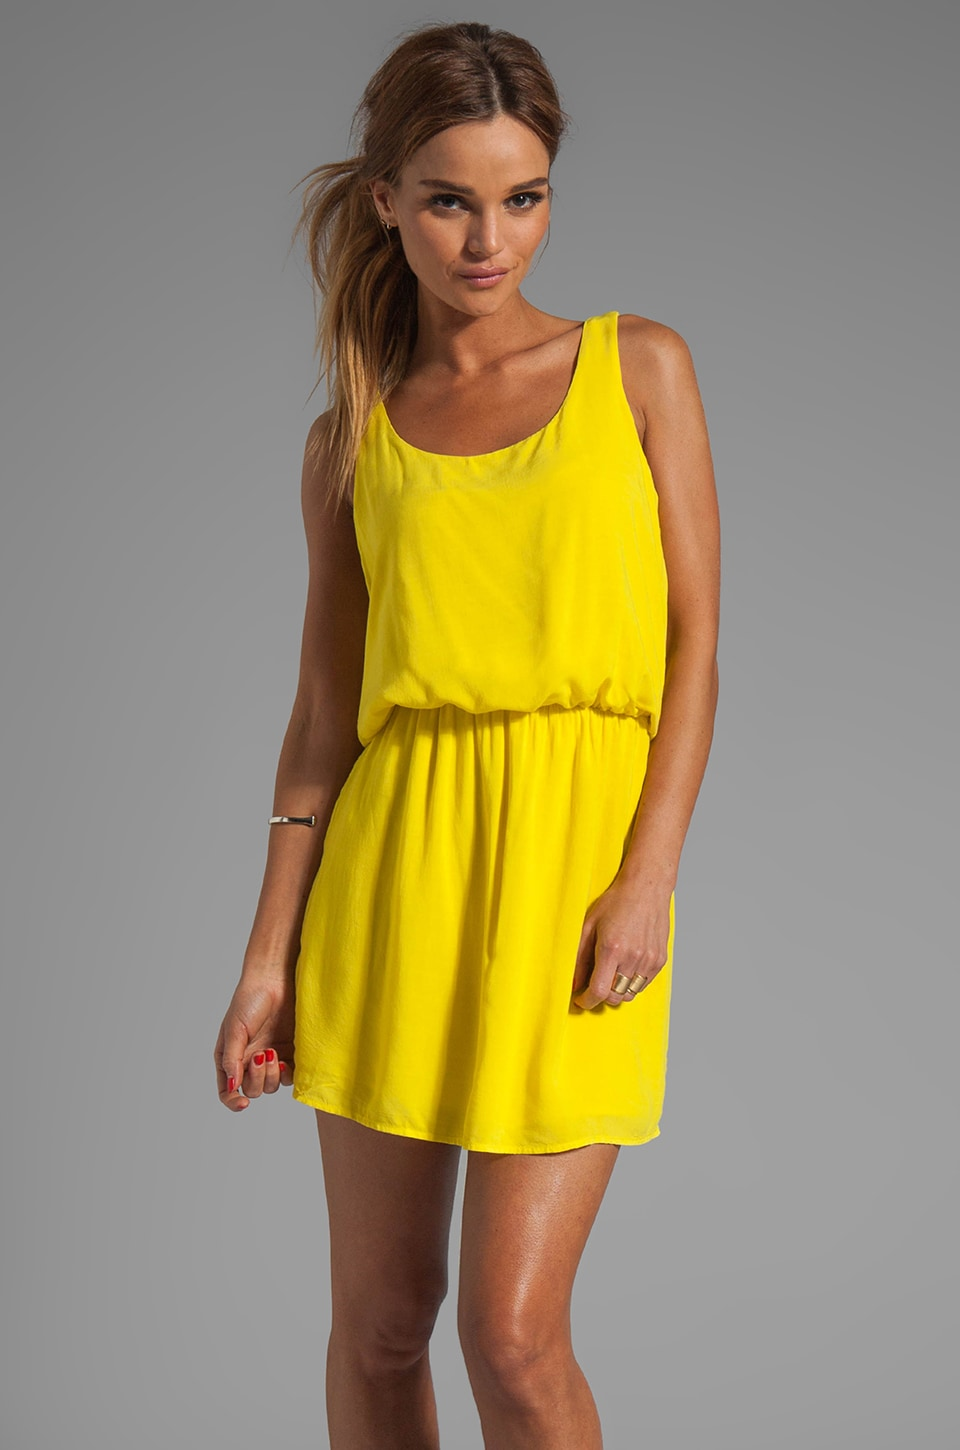 Splendid Tank Dress in Citrine